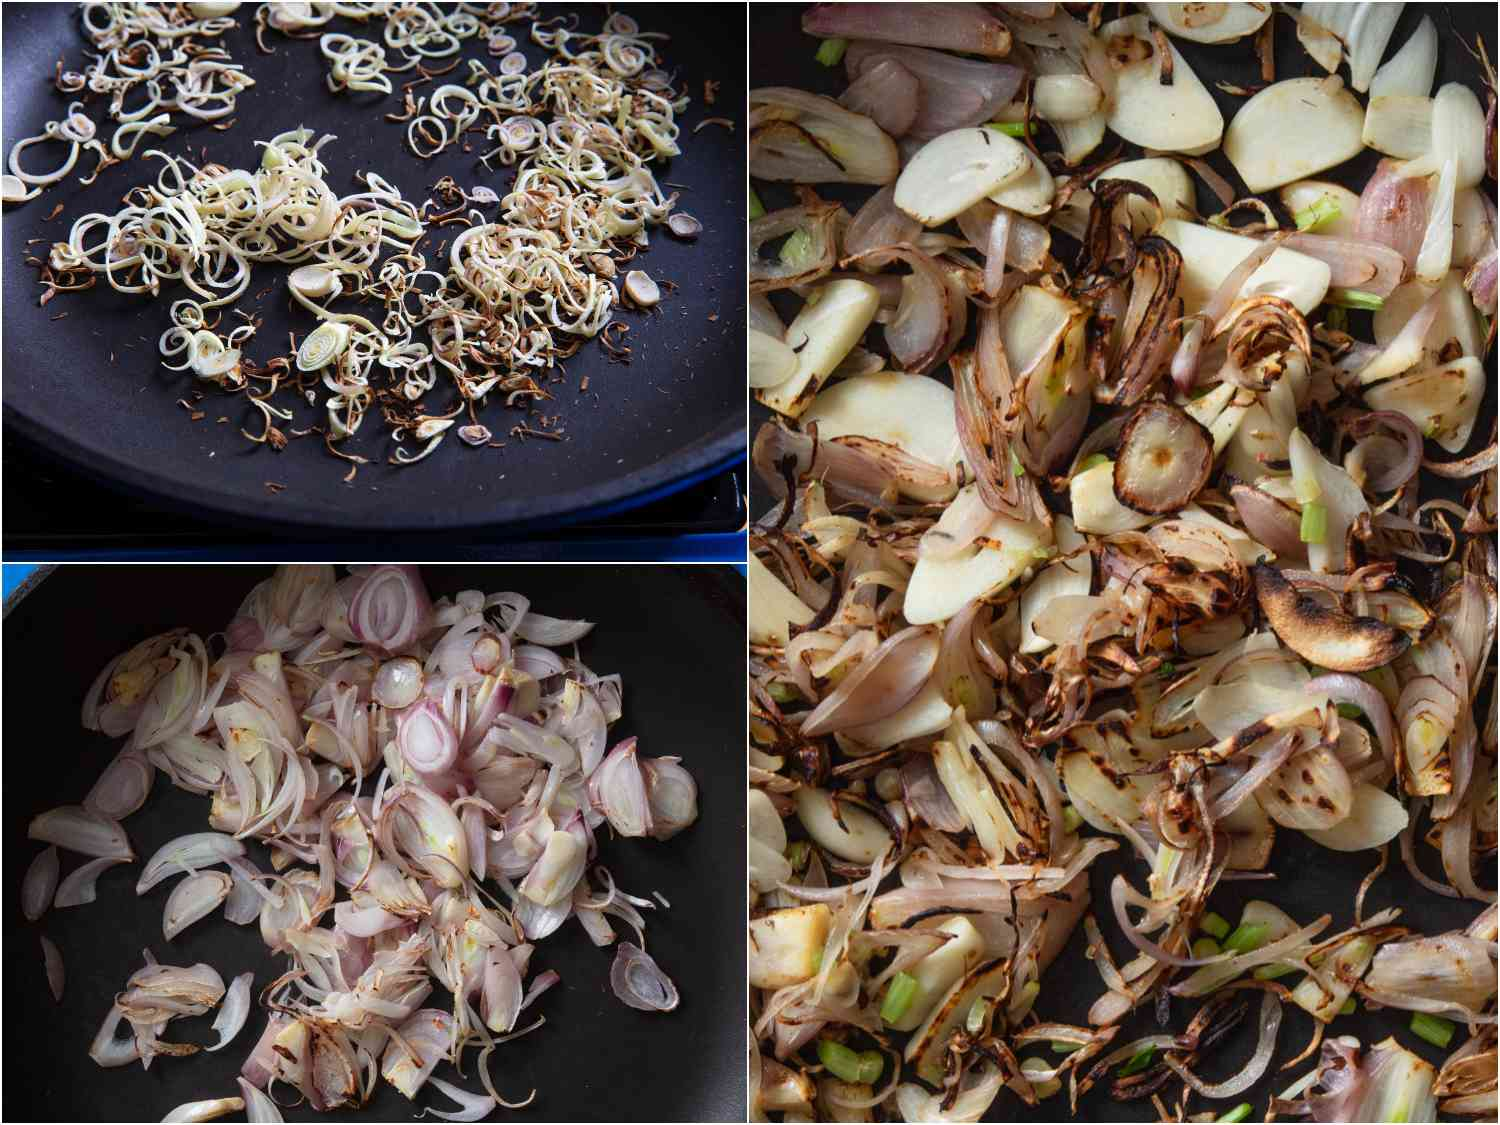 collage: lemongrass charred in skillet; shallots charred in skillet; coriander root and garlic added